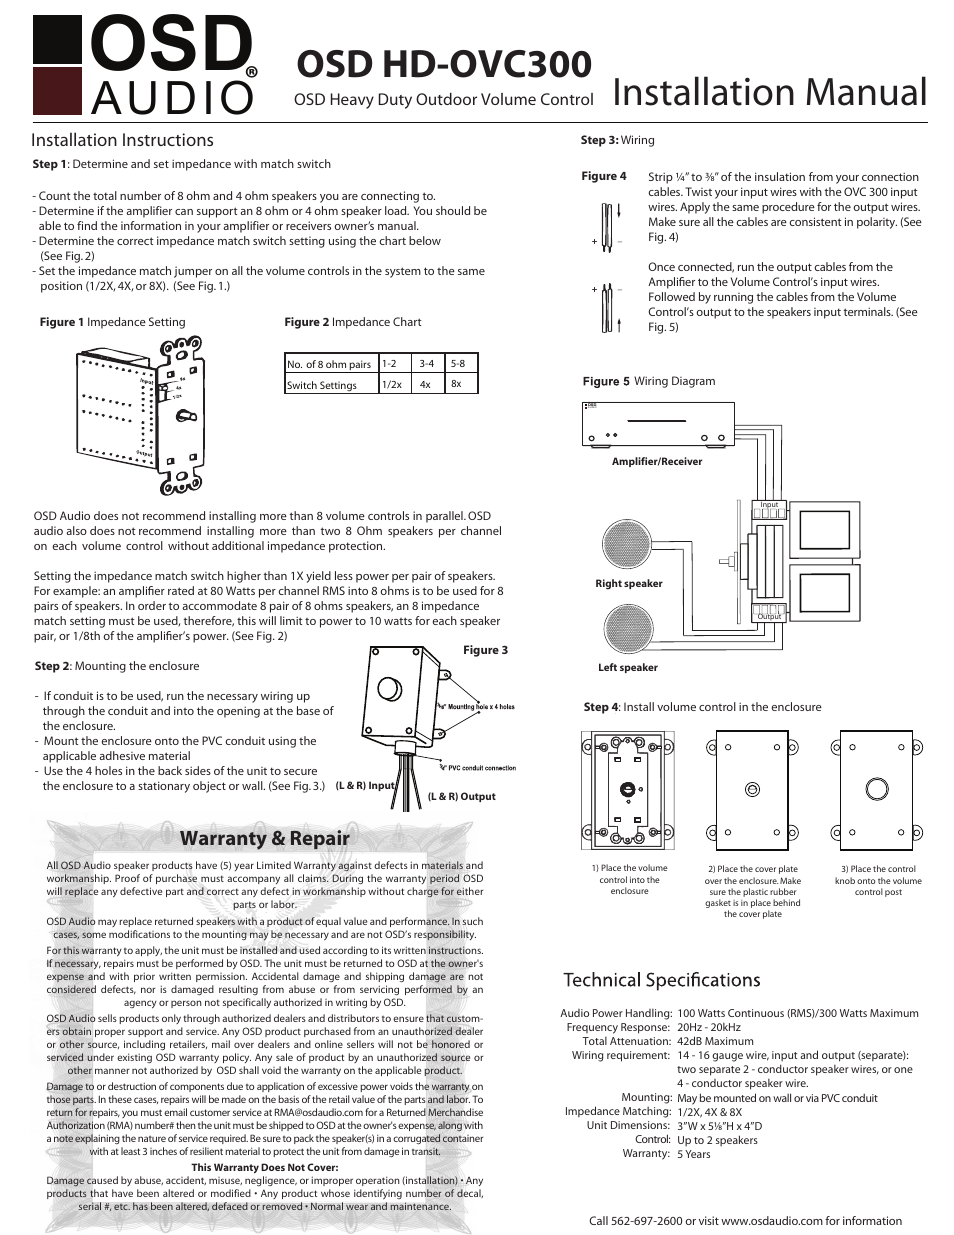 Osd audio ovc100 user manual 1 page also for ovc300 greentooth Image collections